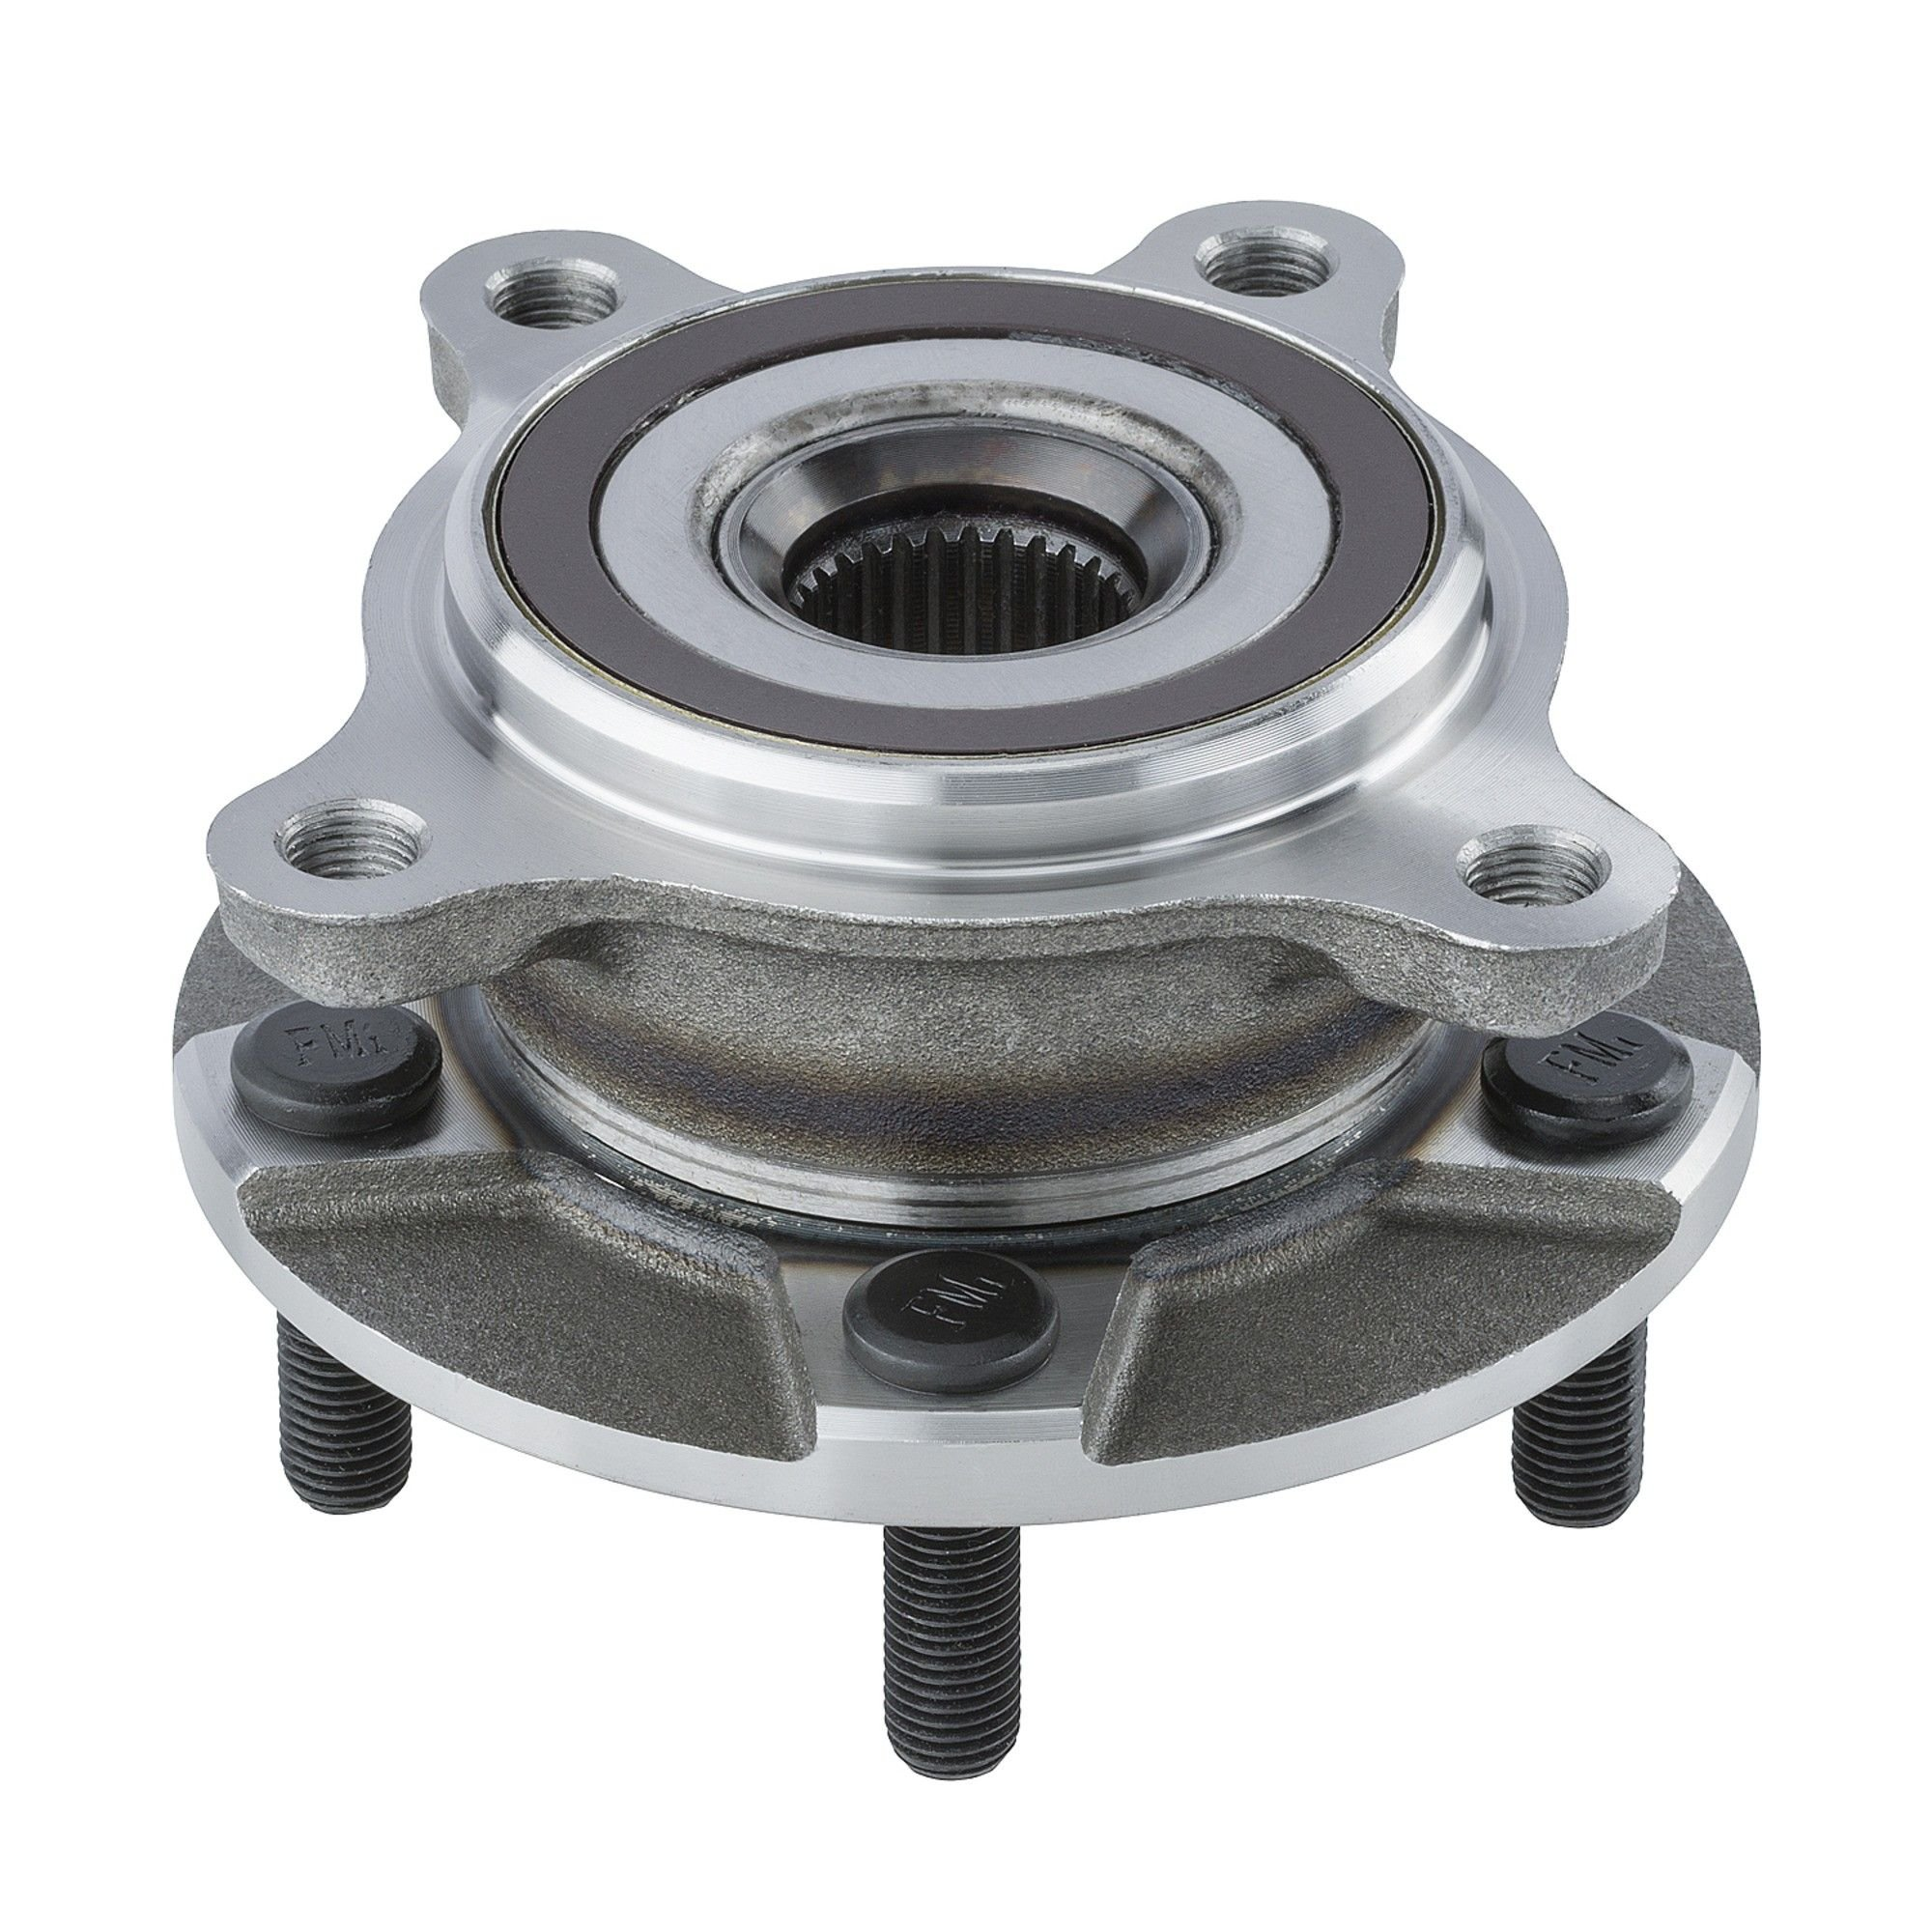 Lexus IS250 Wheel Bearing and Hub Assembly Replacement (Beck